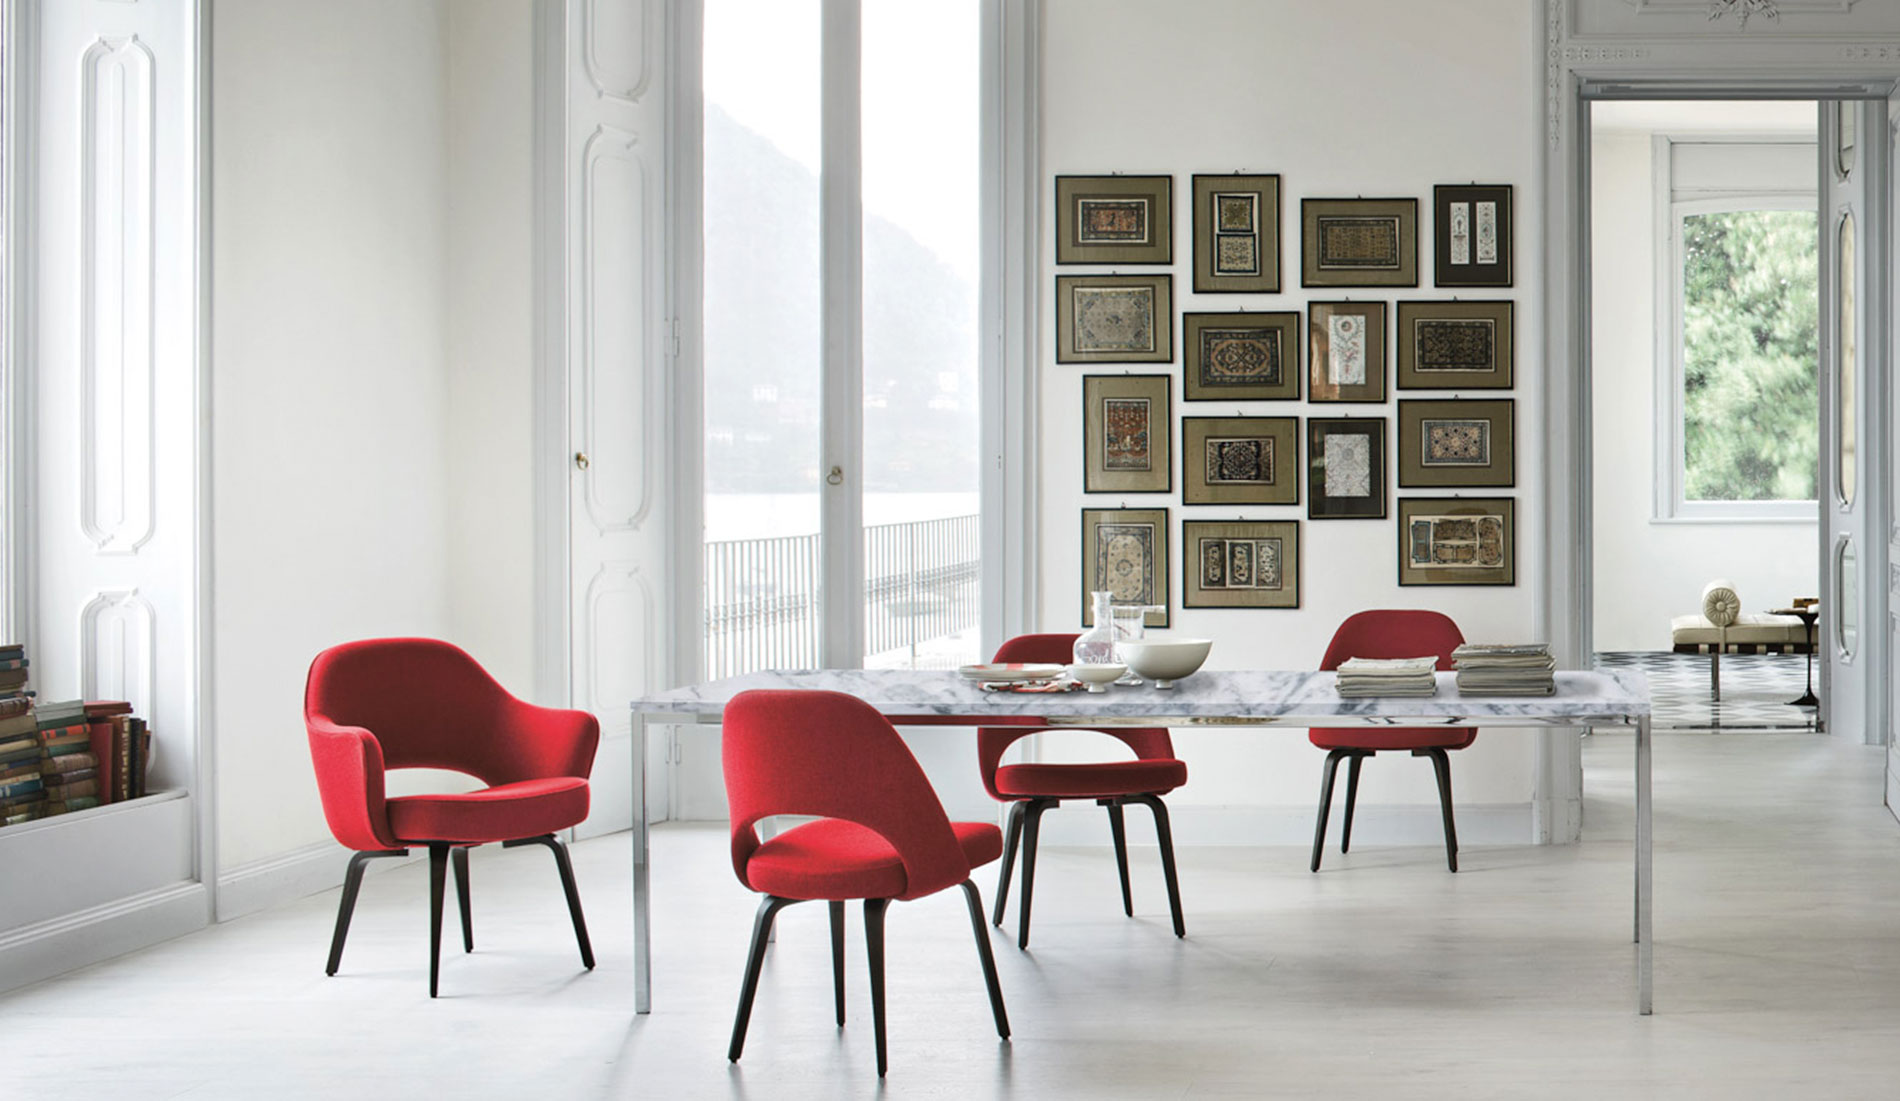 Knoll Dining Room with Florence Knoll Table and Saarinen Executive Chairs